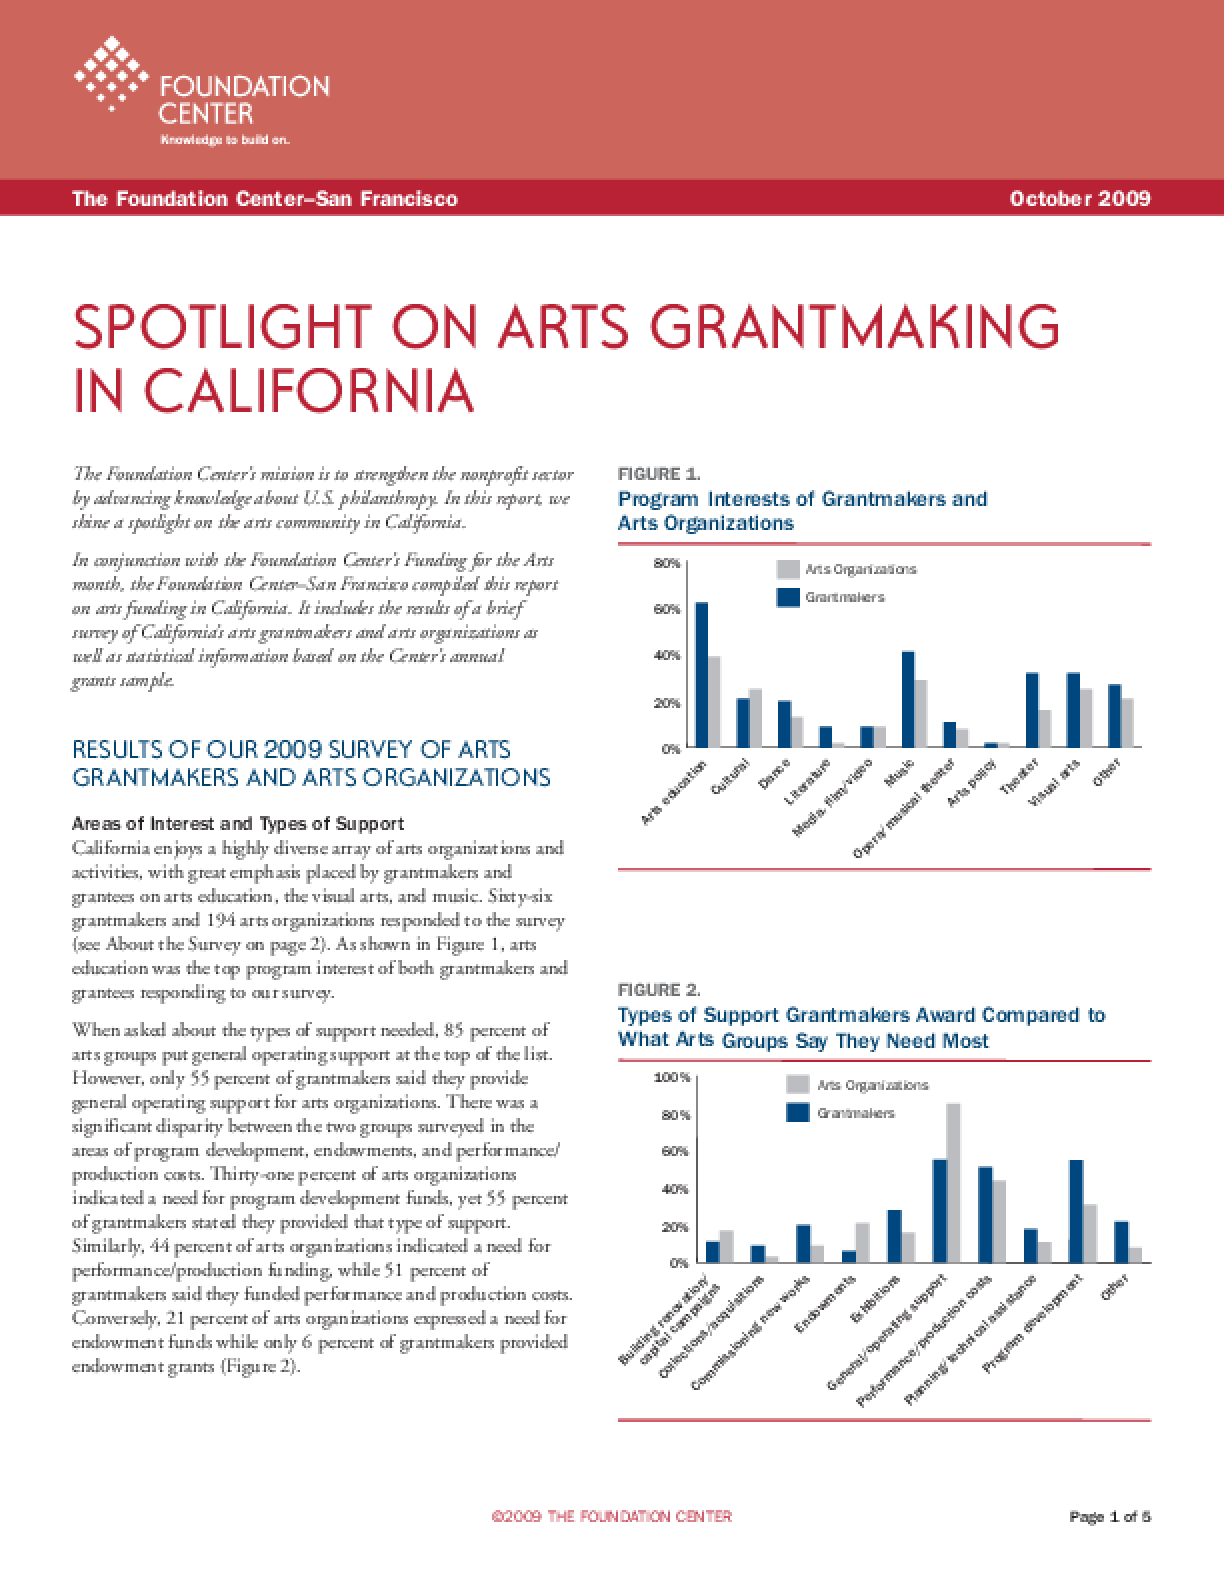 Spotlight on Arts Grantmaking in California 2009